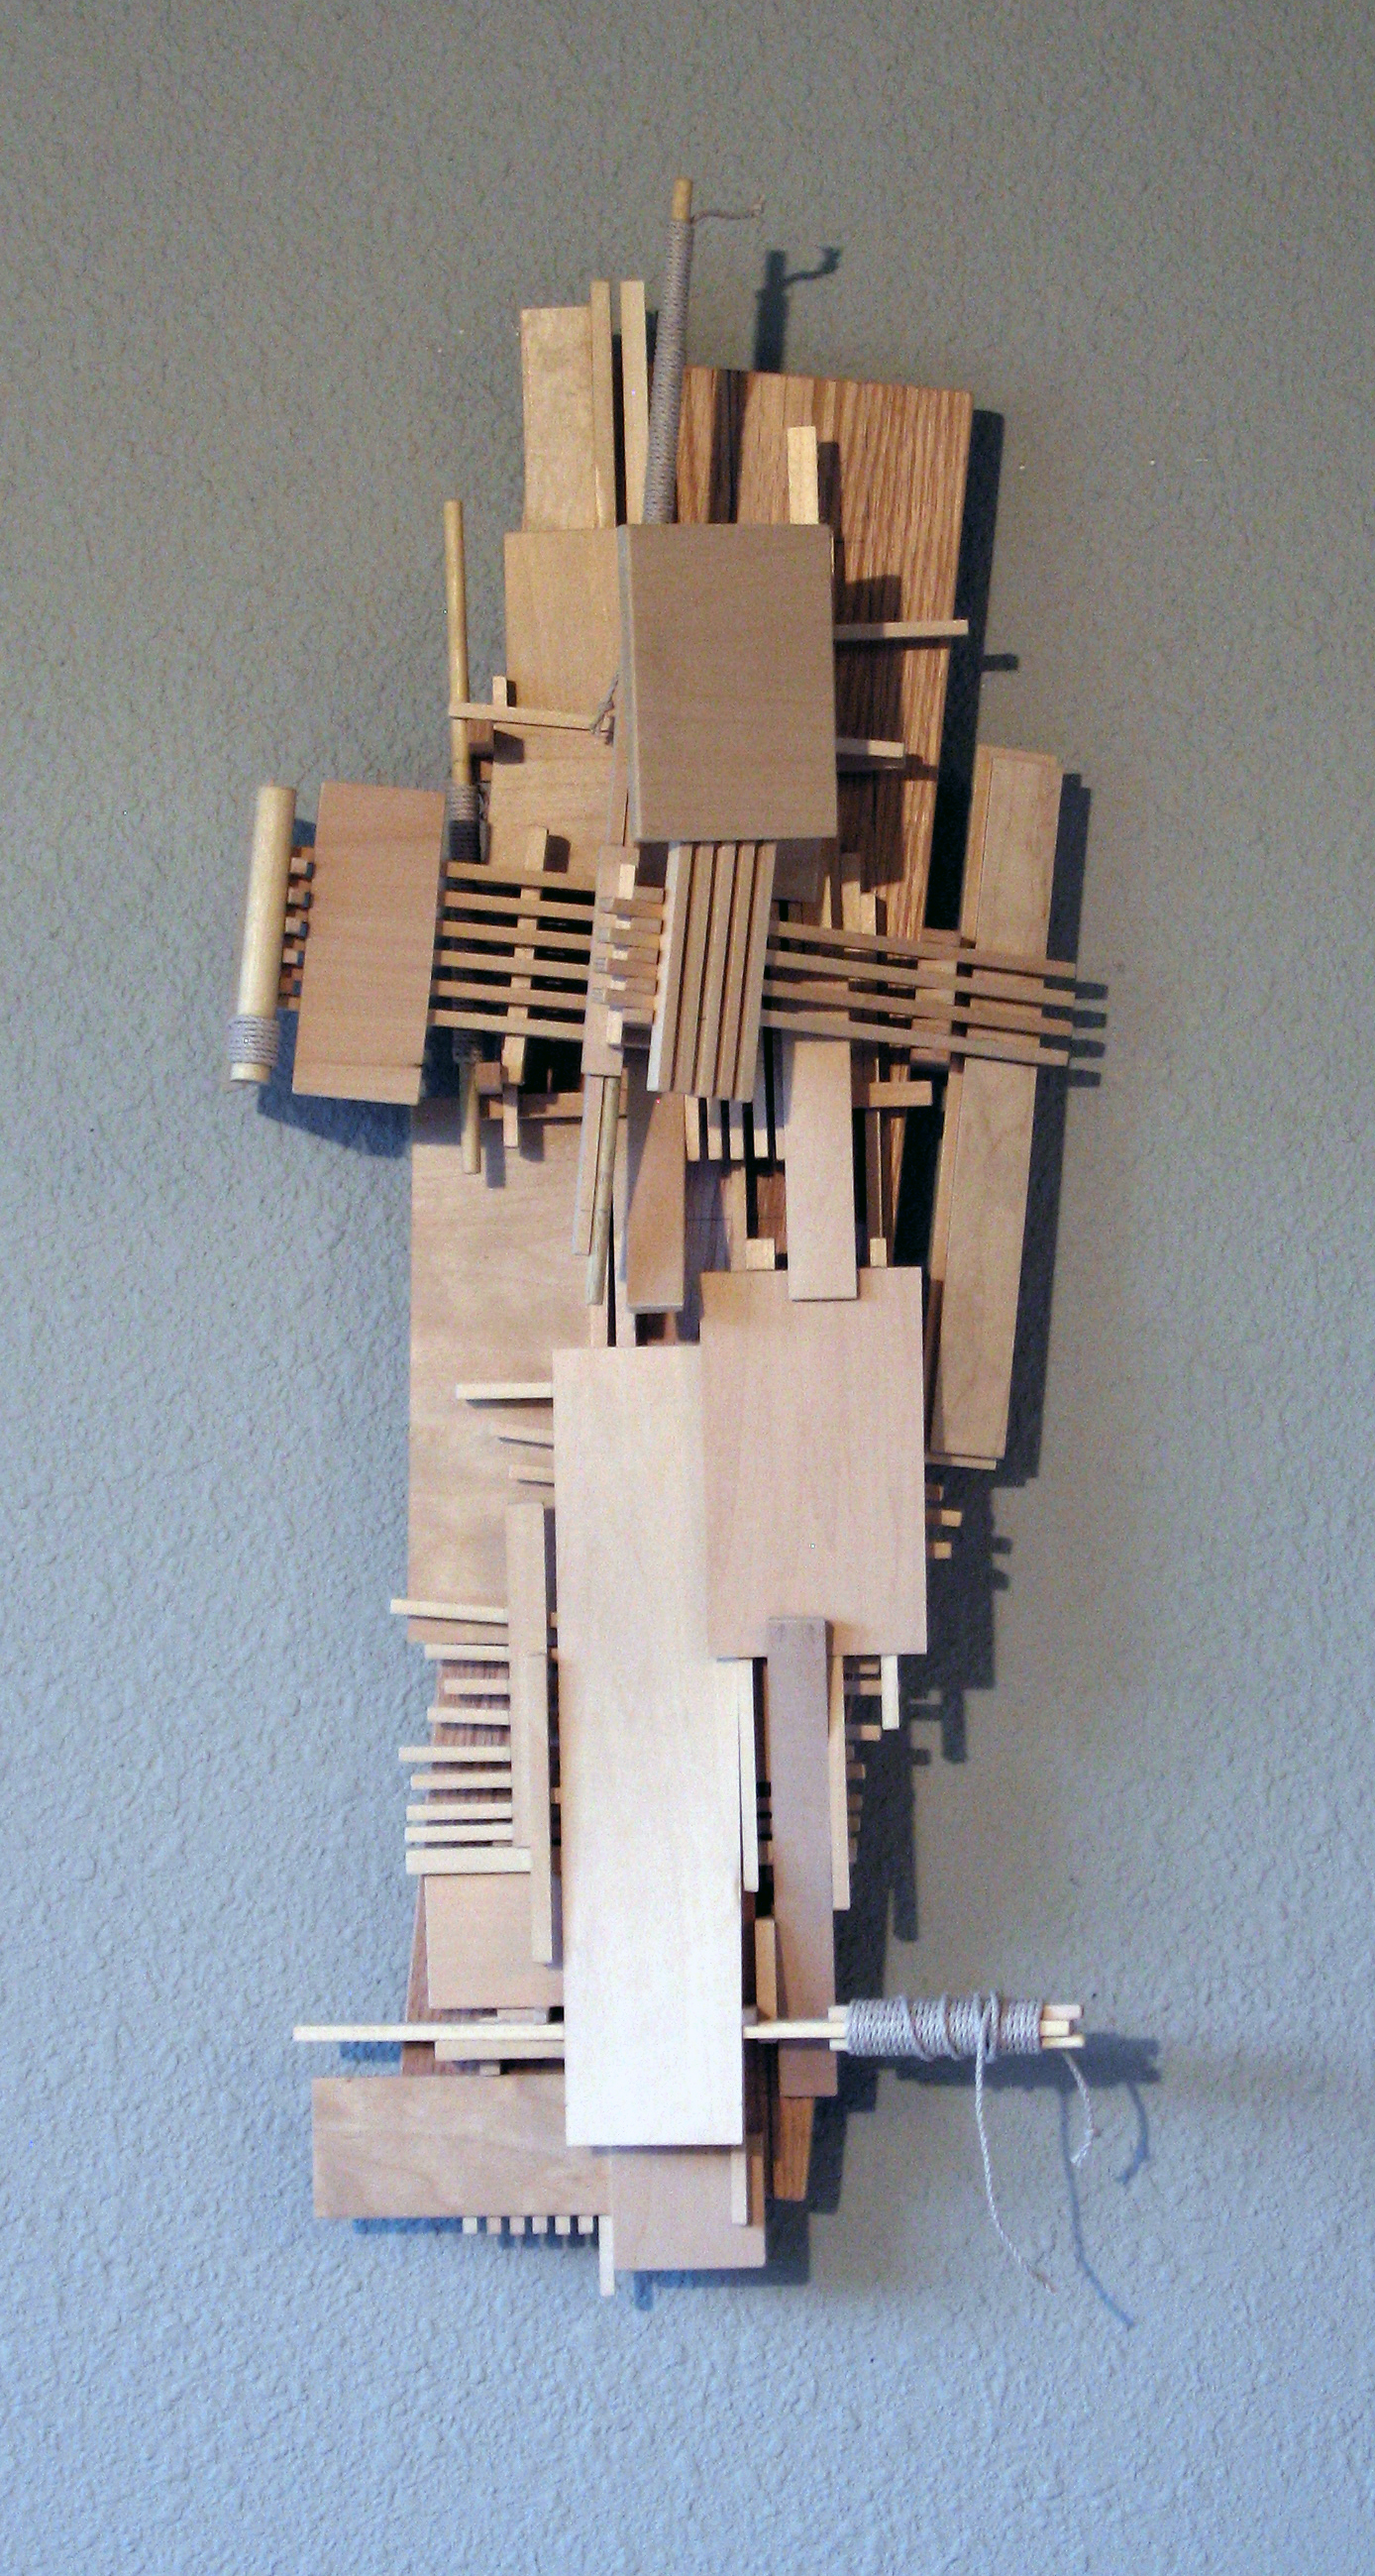 Home Decor Office Wall Sculpture Construction 25